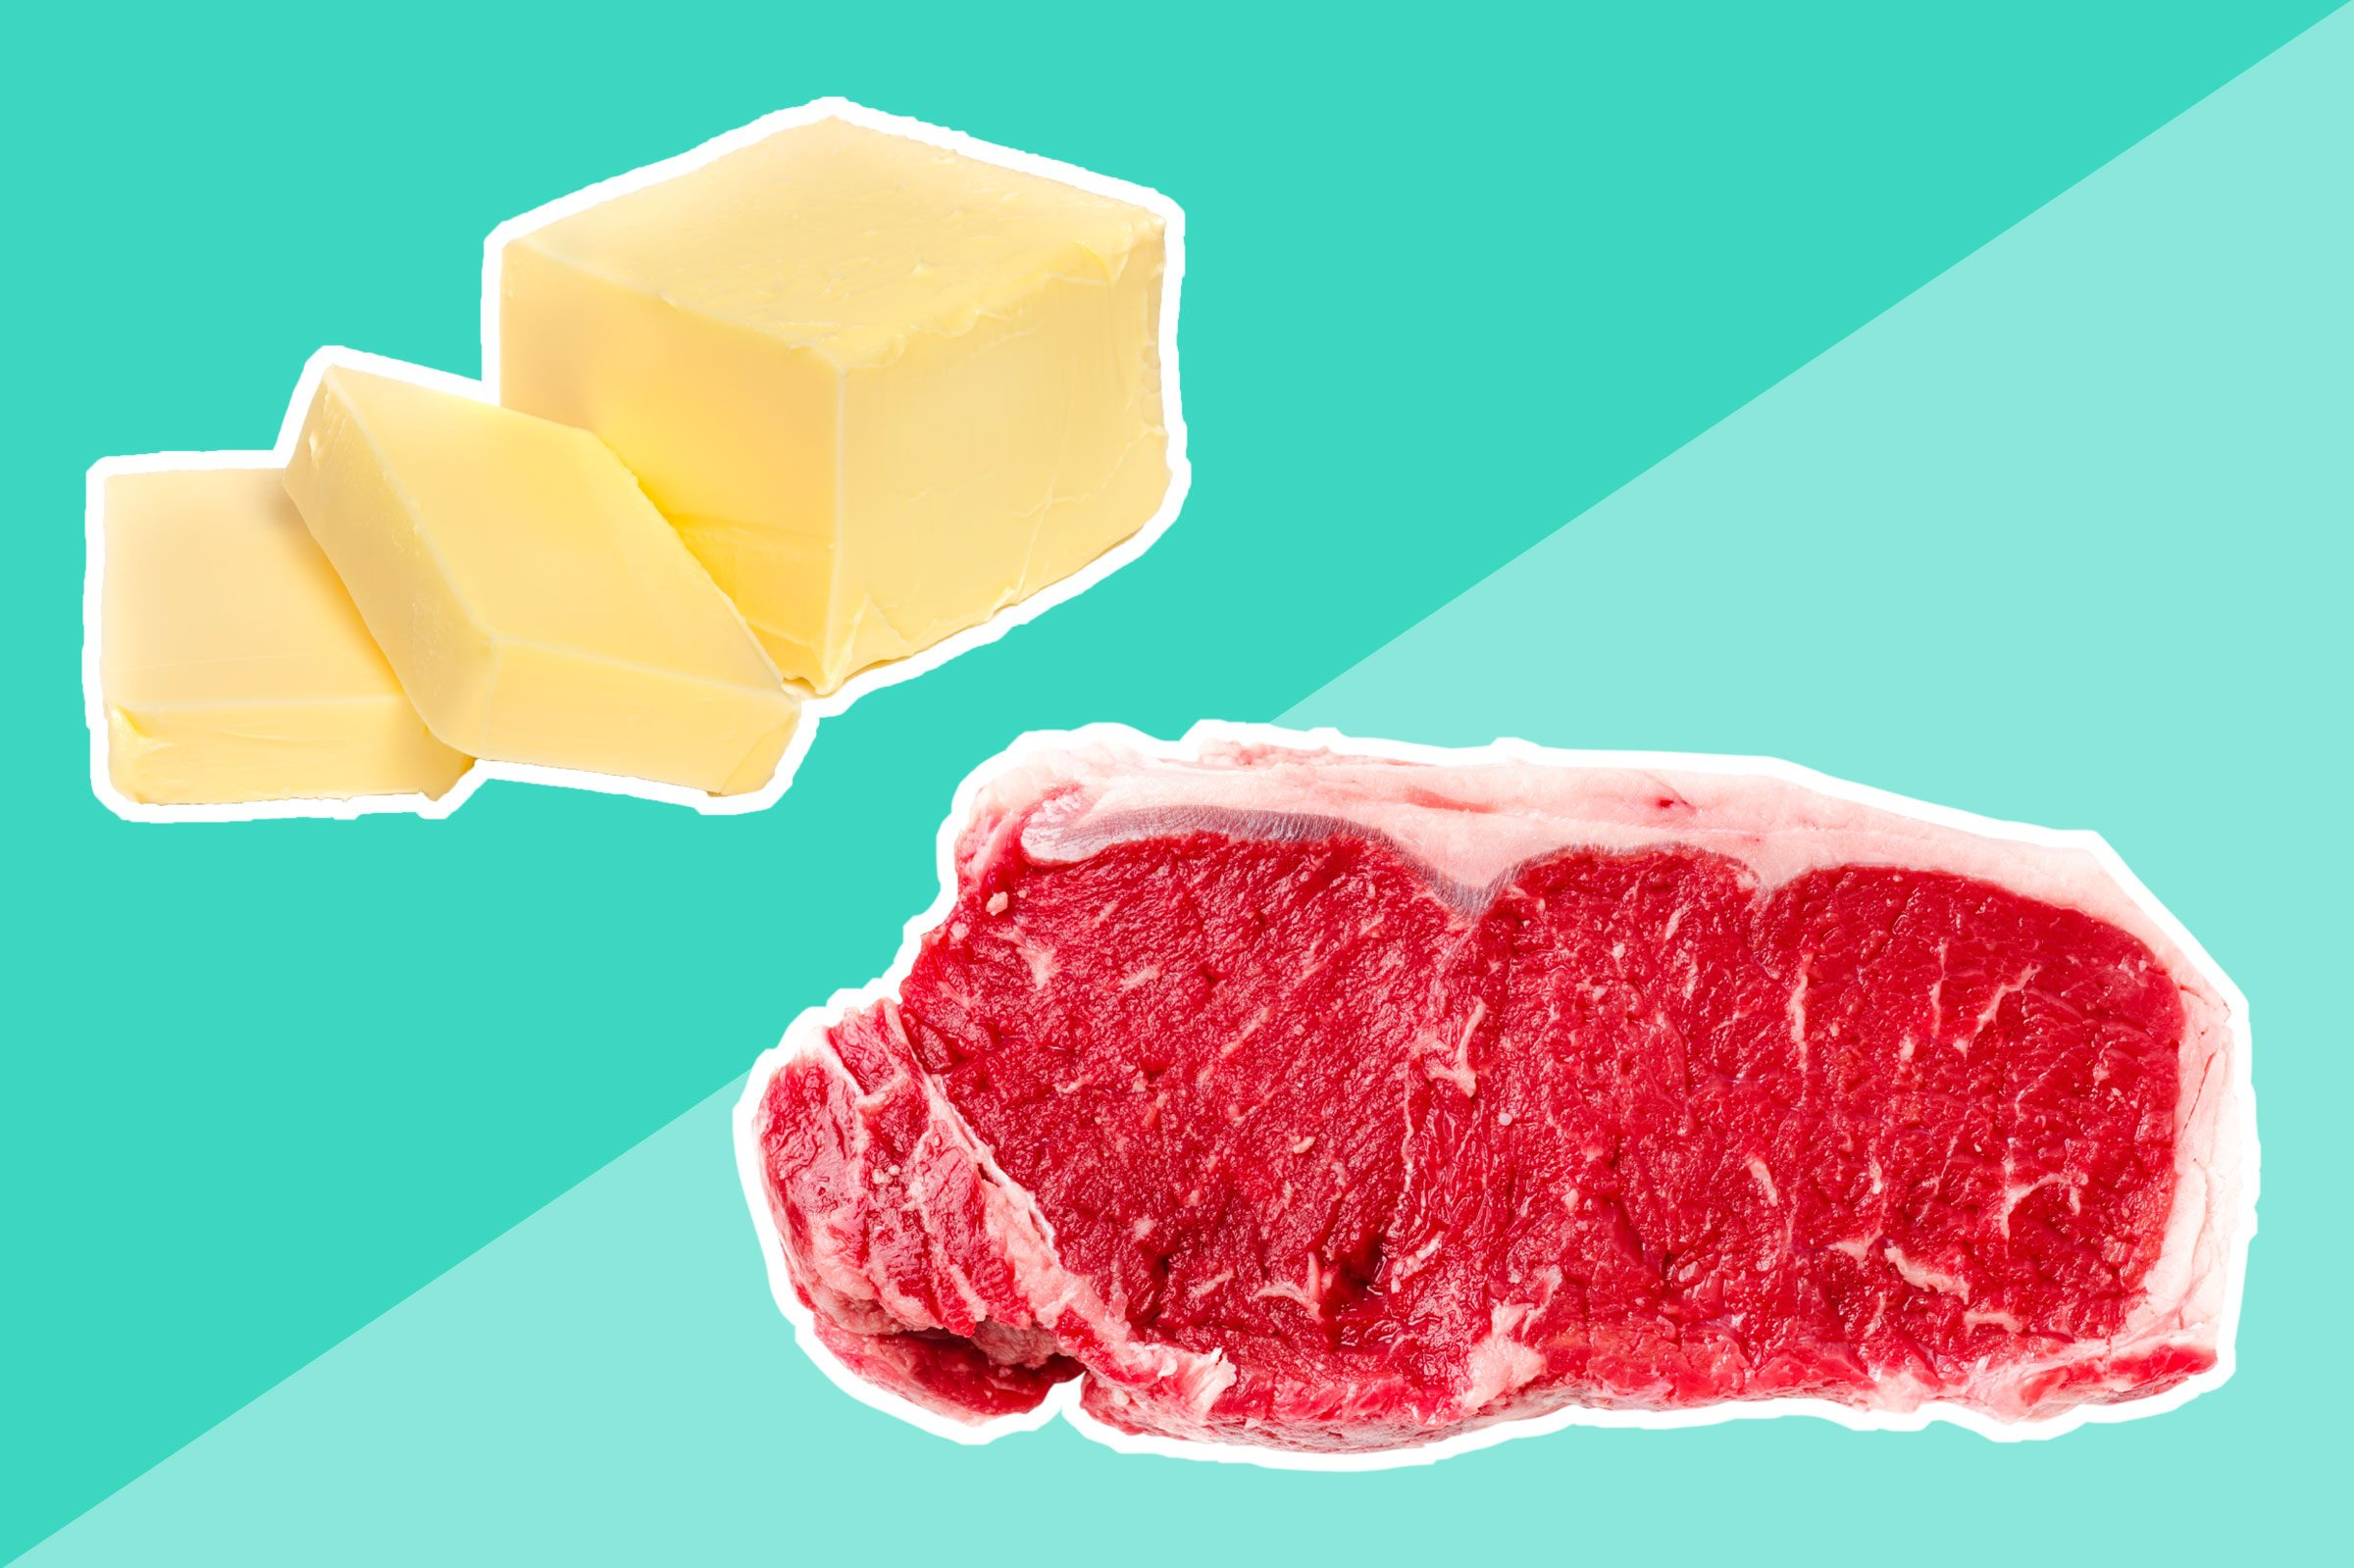 Red Meat and Butter